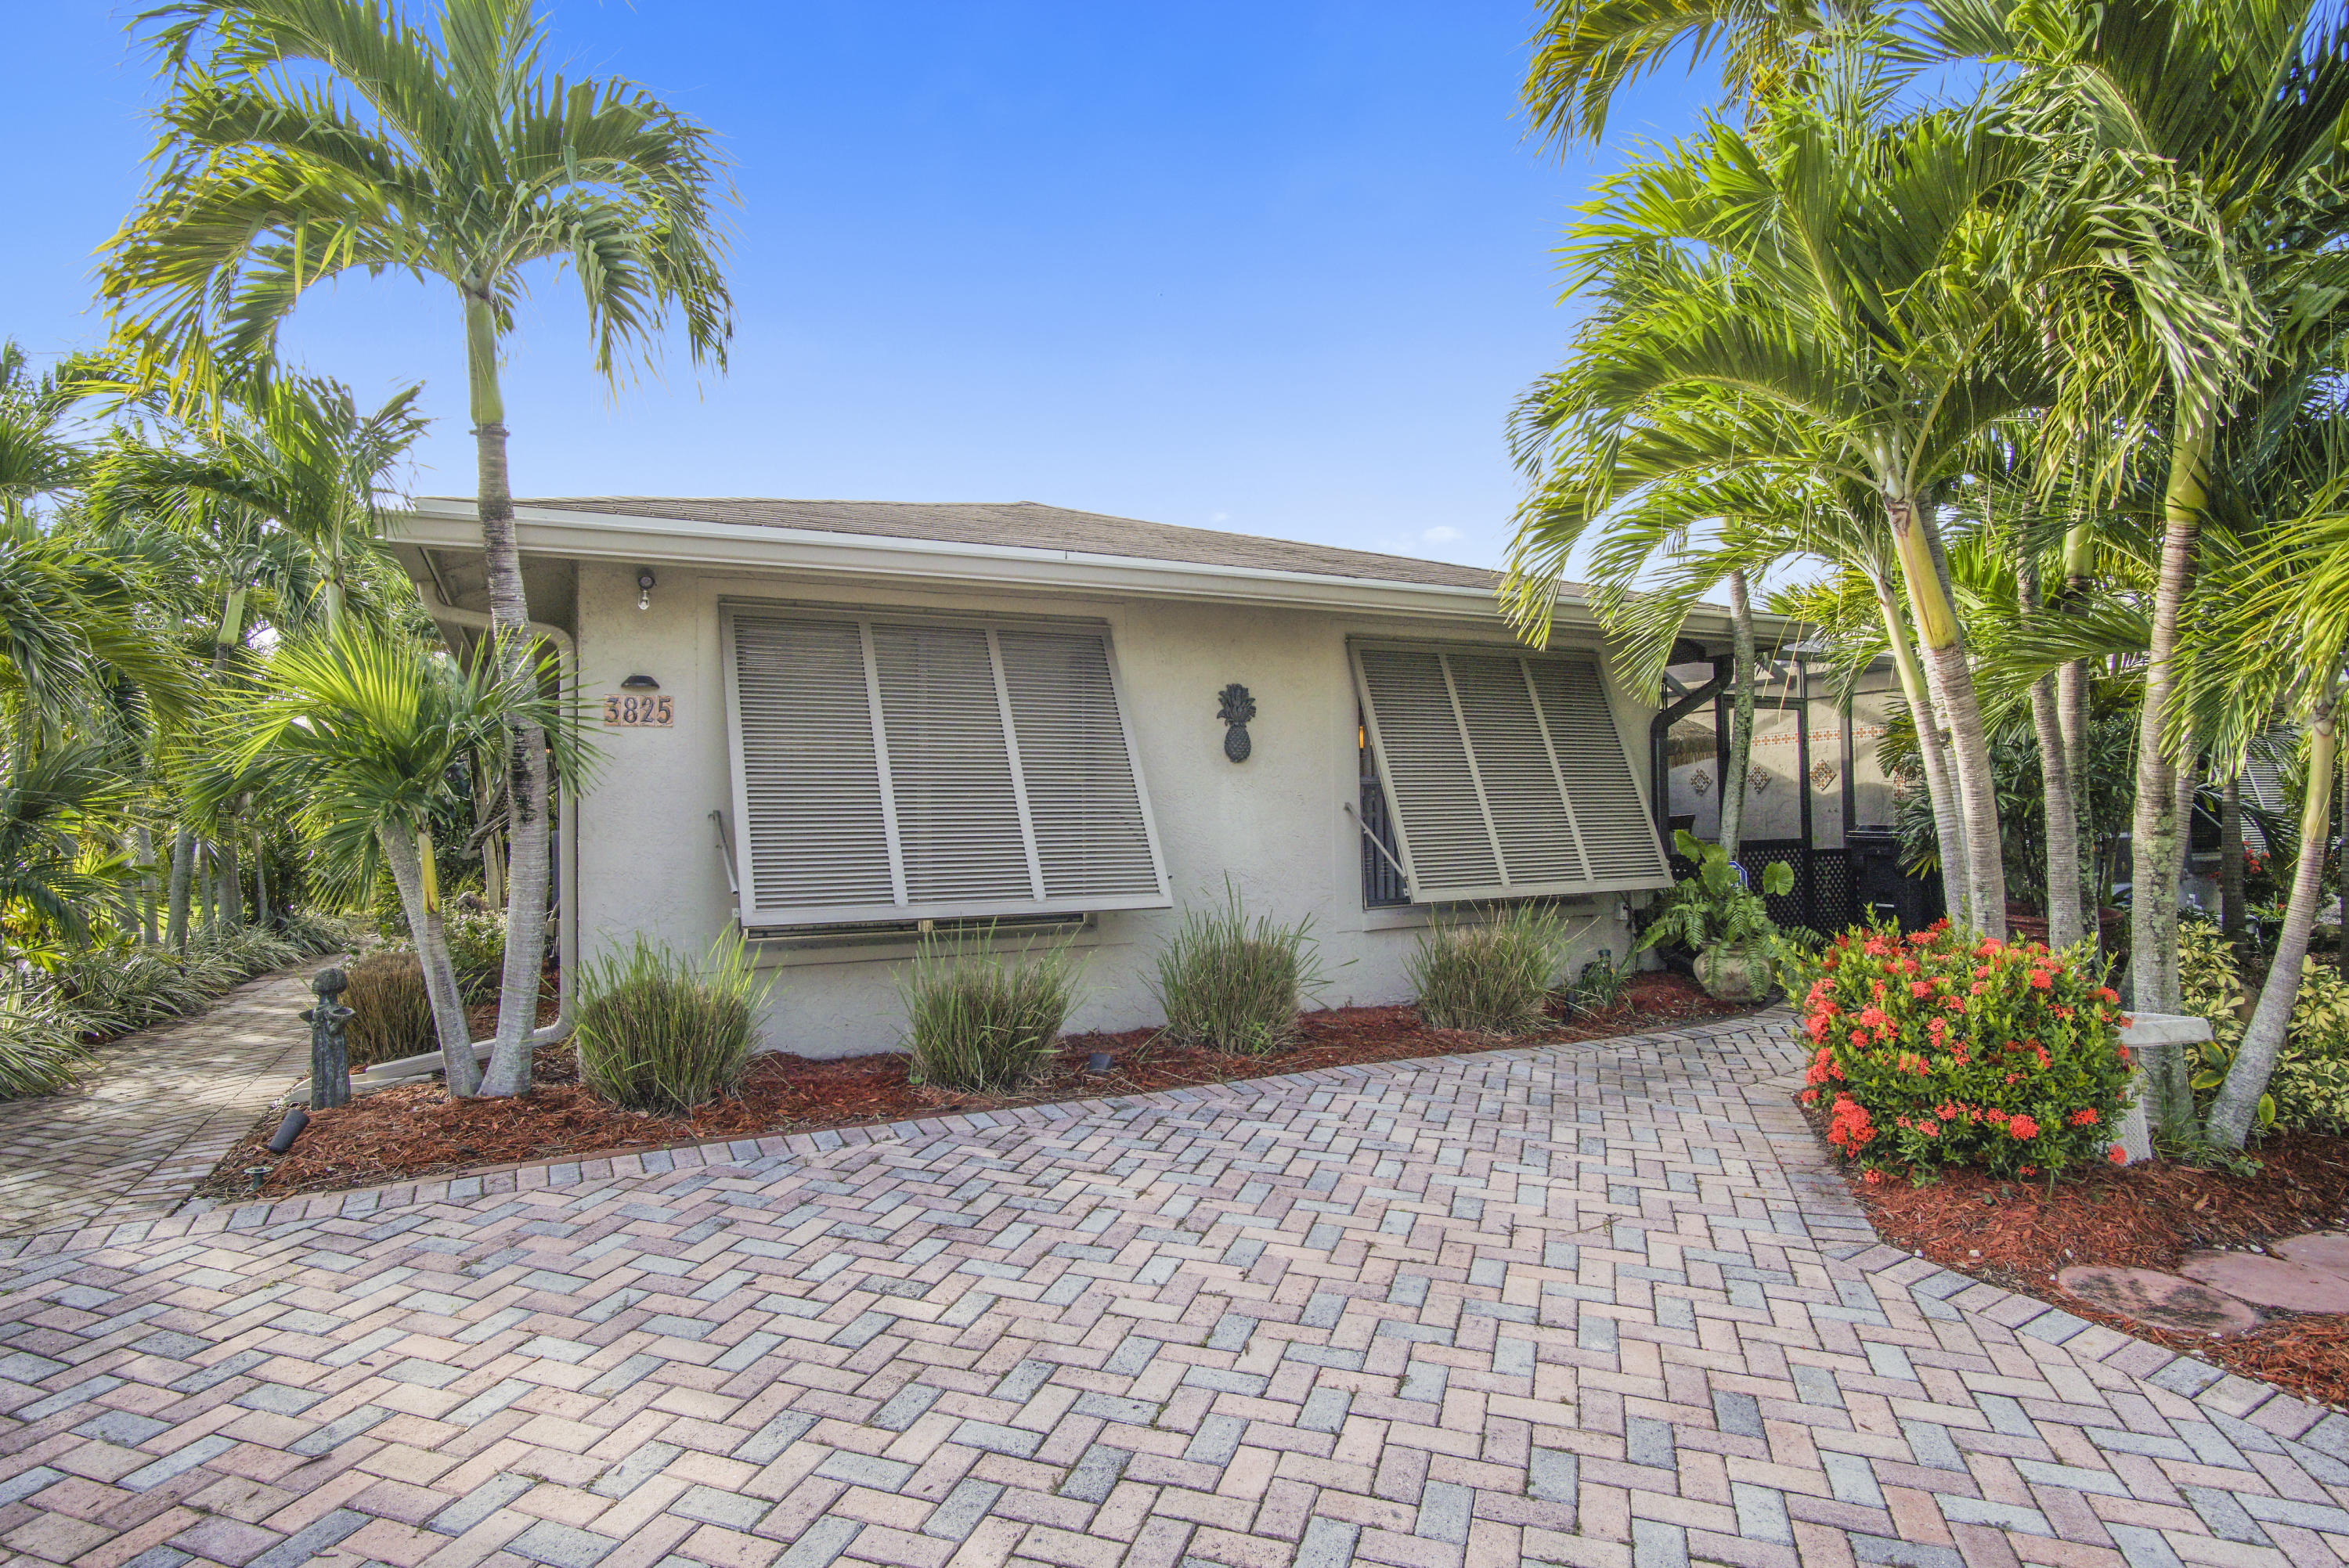 A True Florida Style Home. This home is a tropical oasis located in West Lake Worth and features 2 bedrooms/2baths, a main living room area and a large spacious Florida-bonus room with wrap around windows. This home features front and back screened Lanais, Plantation shutters, a wide-brick-paver driveway, spacious storage room and lush landscaping. Bright Eat-In kitchen with stainless steel appliances and lot of cabinets for storage. This home also features a bar and a dining room area thtat flows right into the kitchen. Low HOA, serene lakes throughout neighborhood. Clubhouse pool, gym, and lots of amenities. Just a few minutes from the turnpike and walking distance from shopping center and restaurants. You don.t want to mis this one!